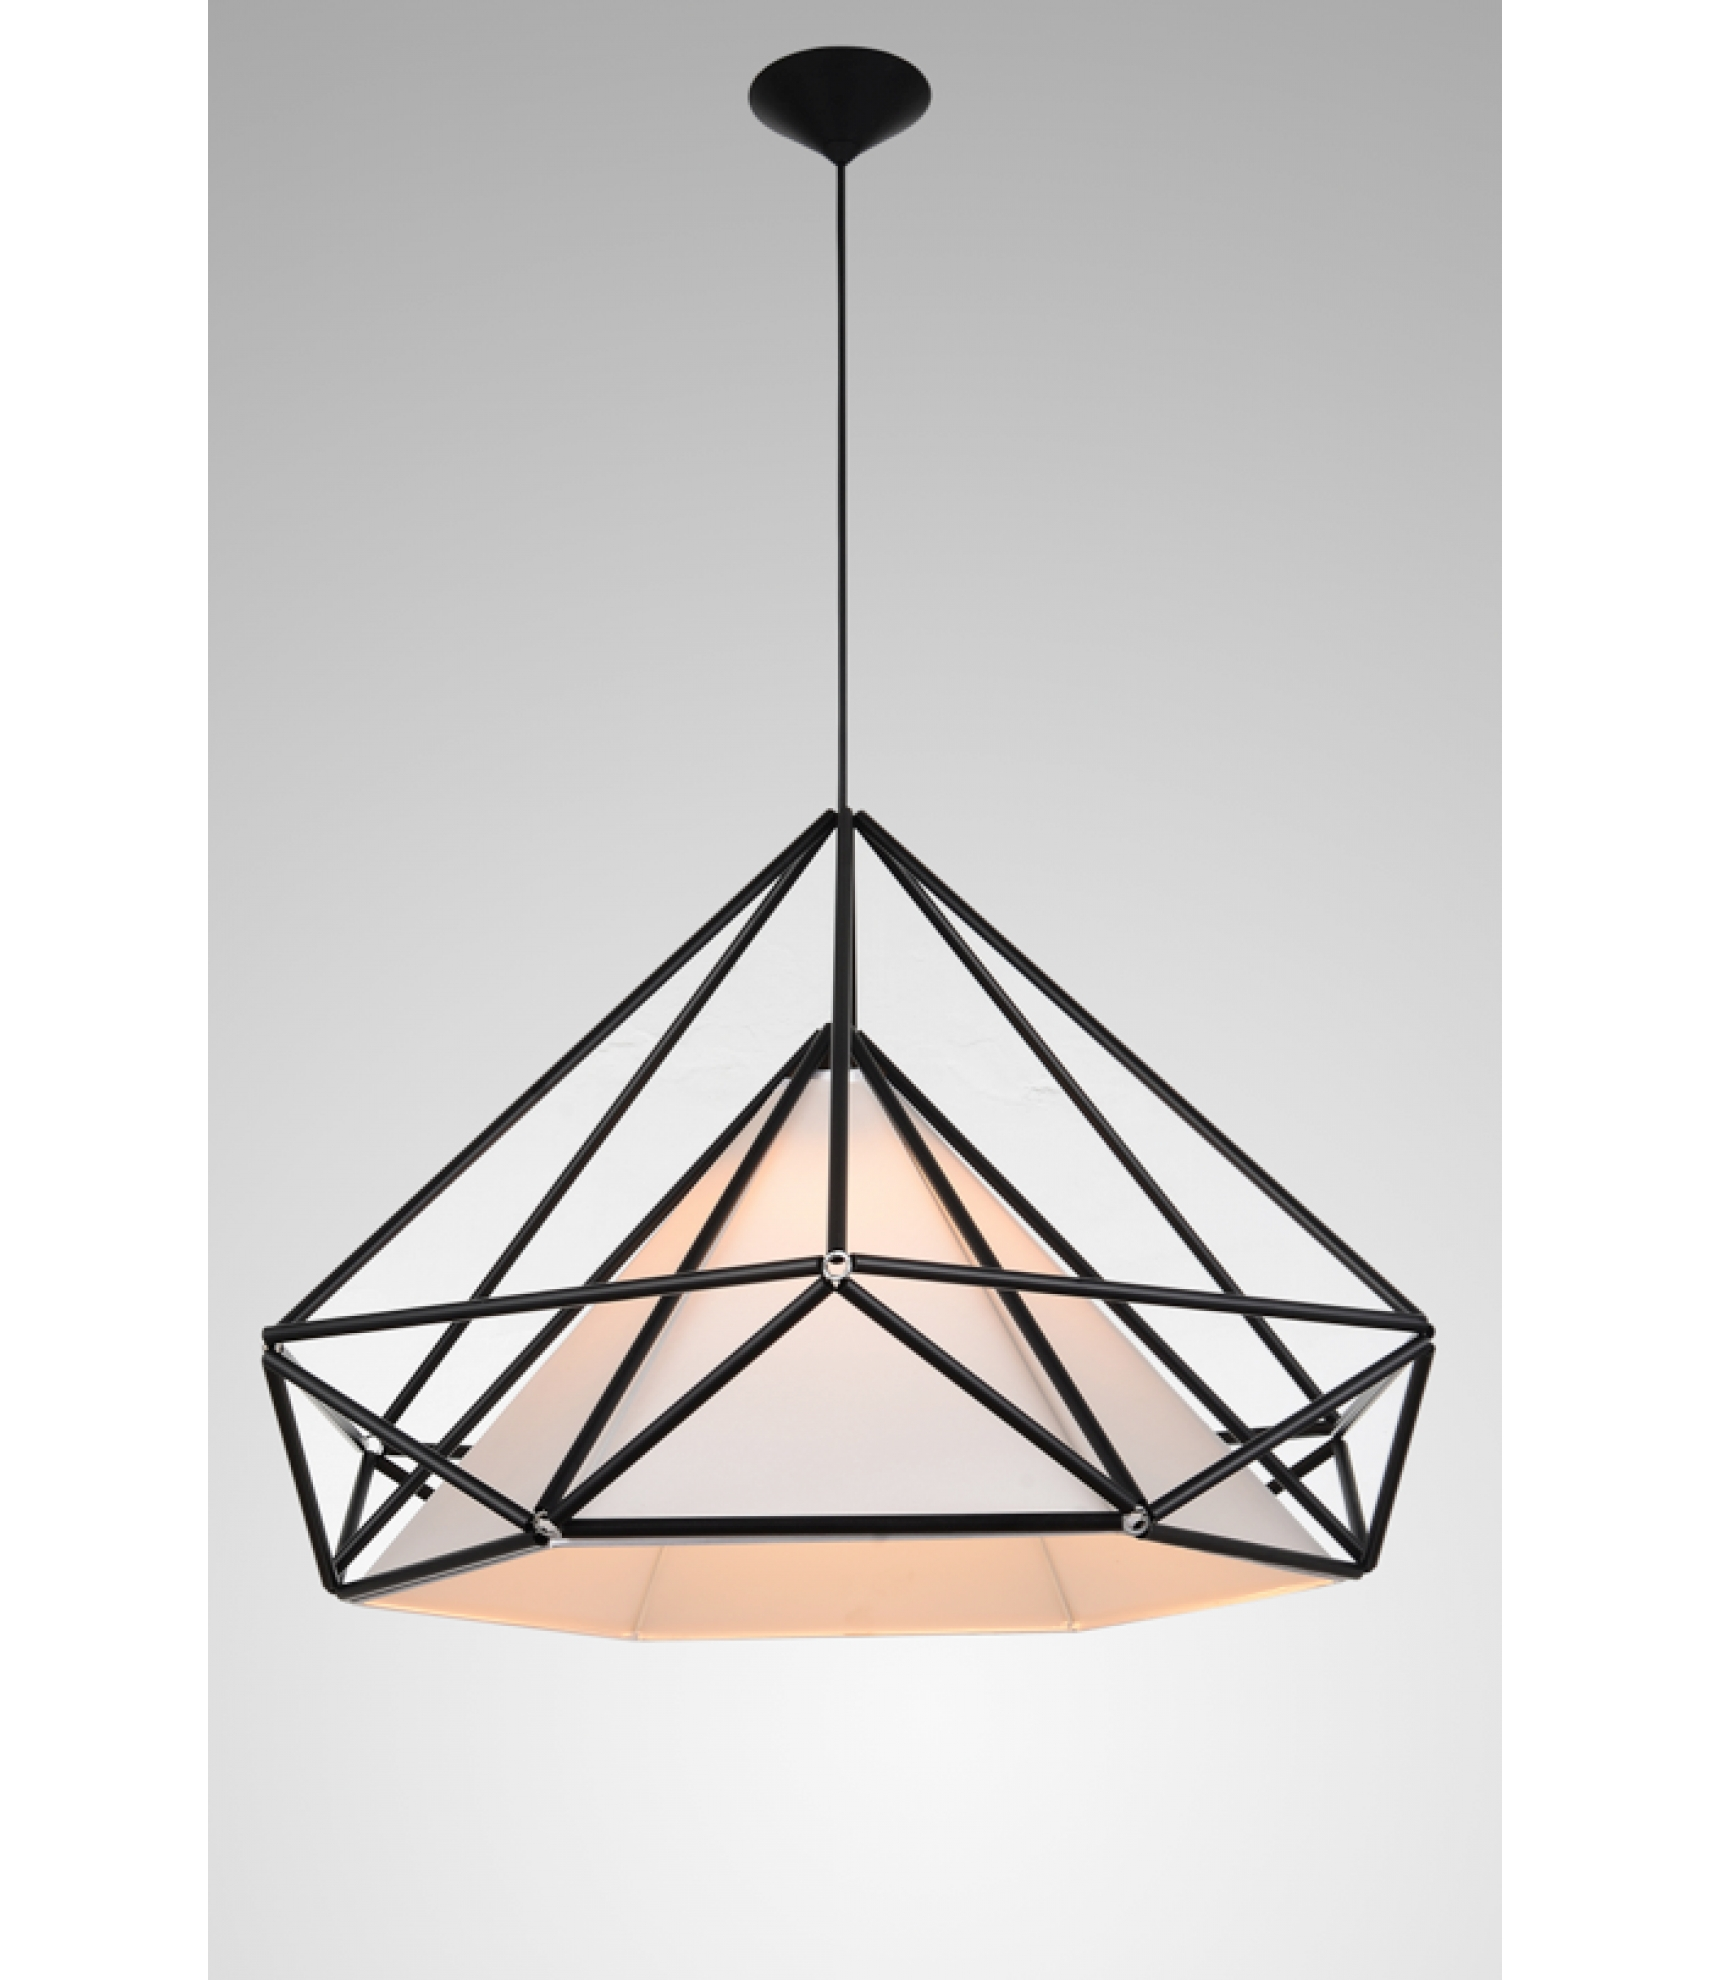 Lucretia Lighting | Tailored Designer Lighting Solutions | Replica pertaining to Himmeli Pendant Lights (Image 12 of 15)